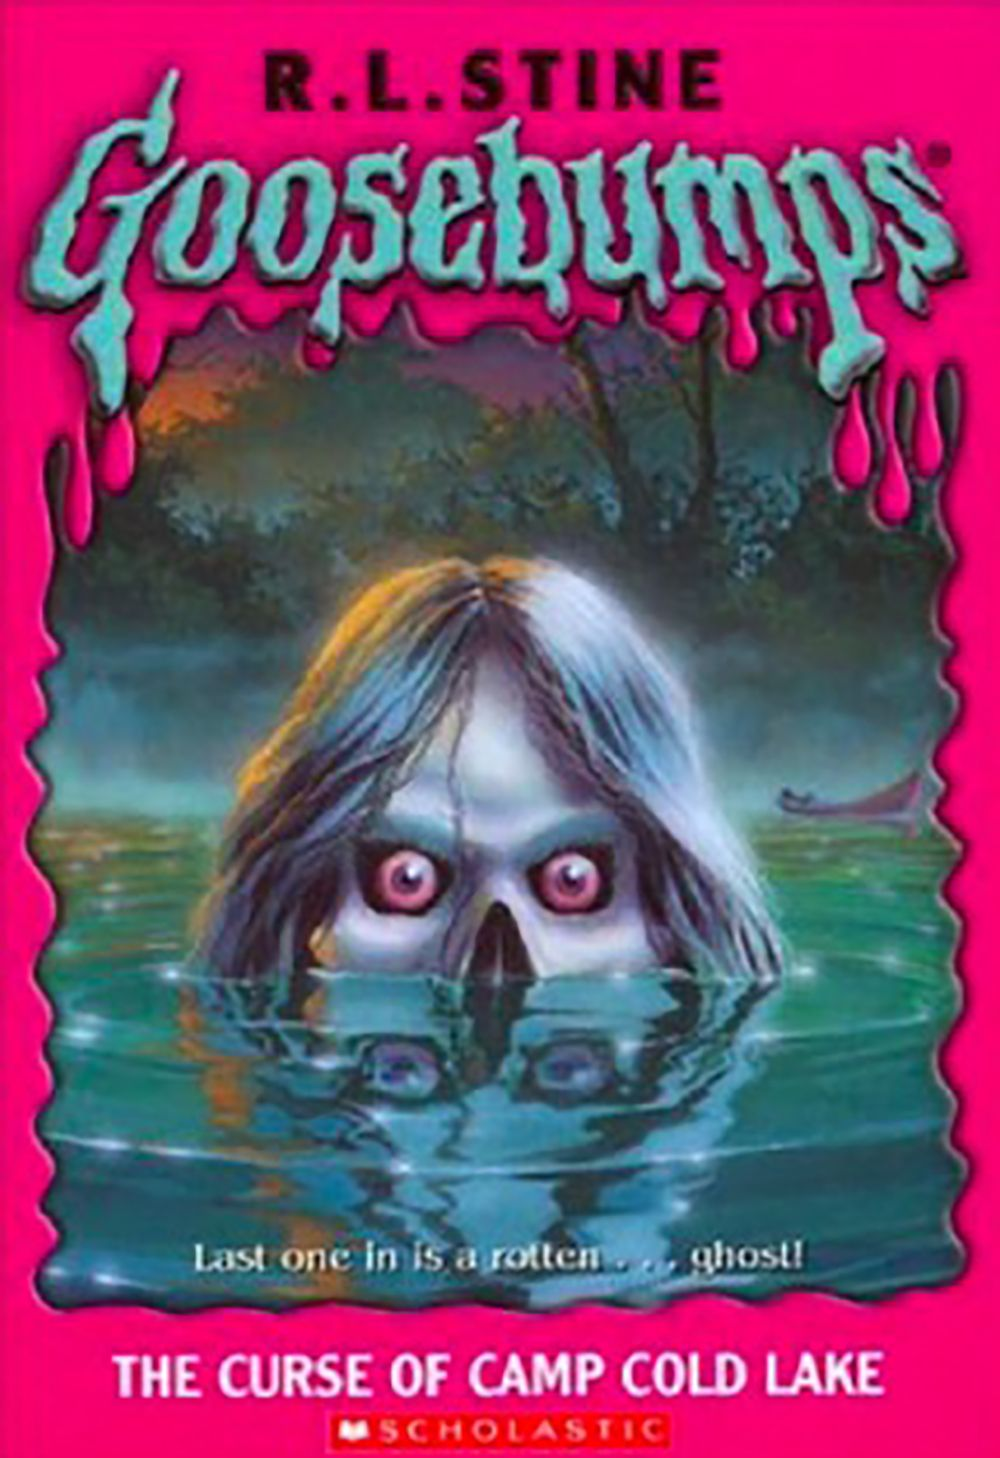 Goosebumps books were the most important books of the 90s recommendations